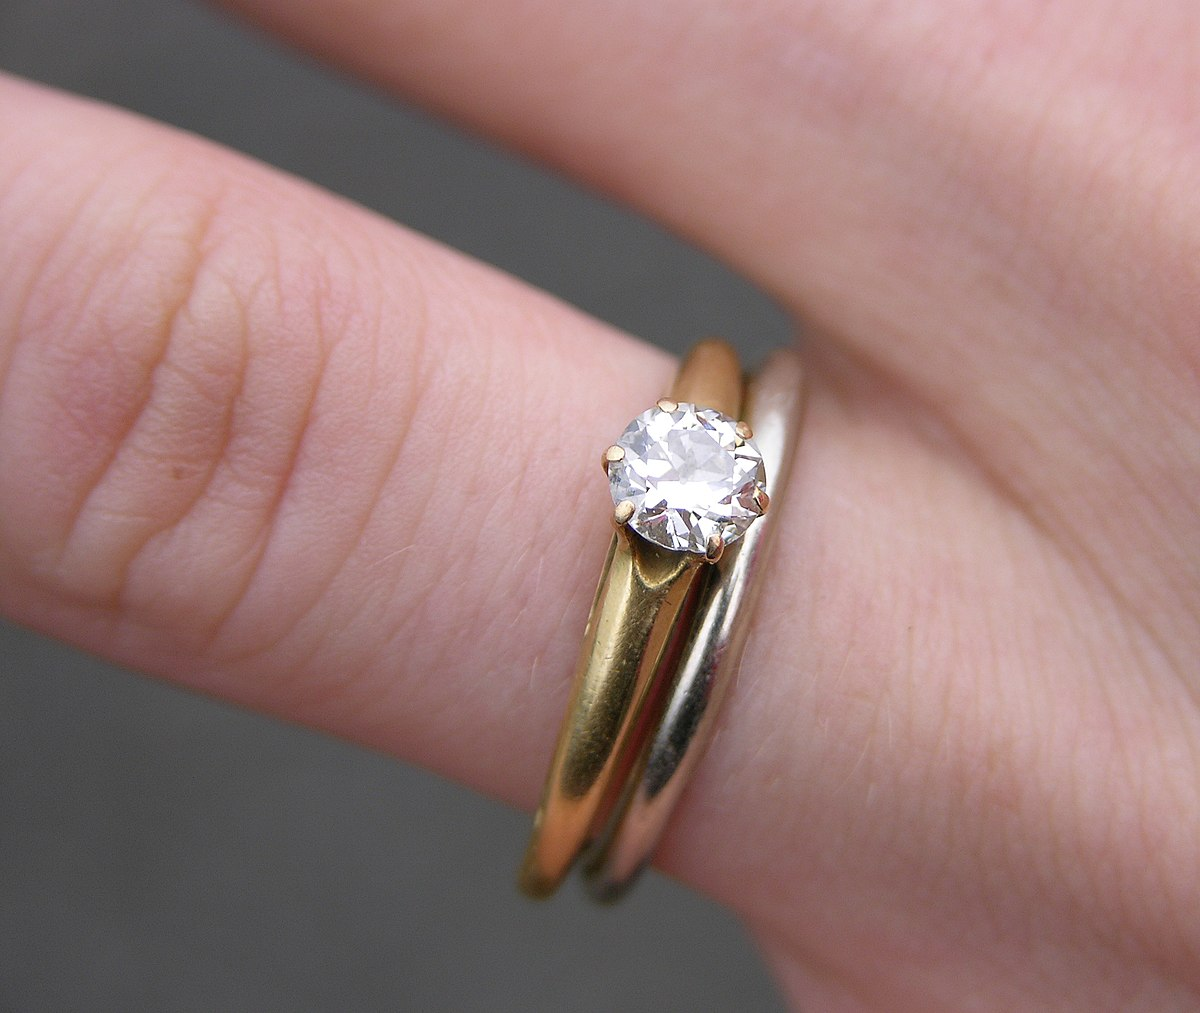 Engagement ring western wedding bands